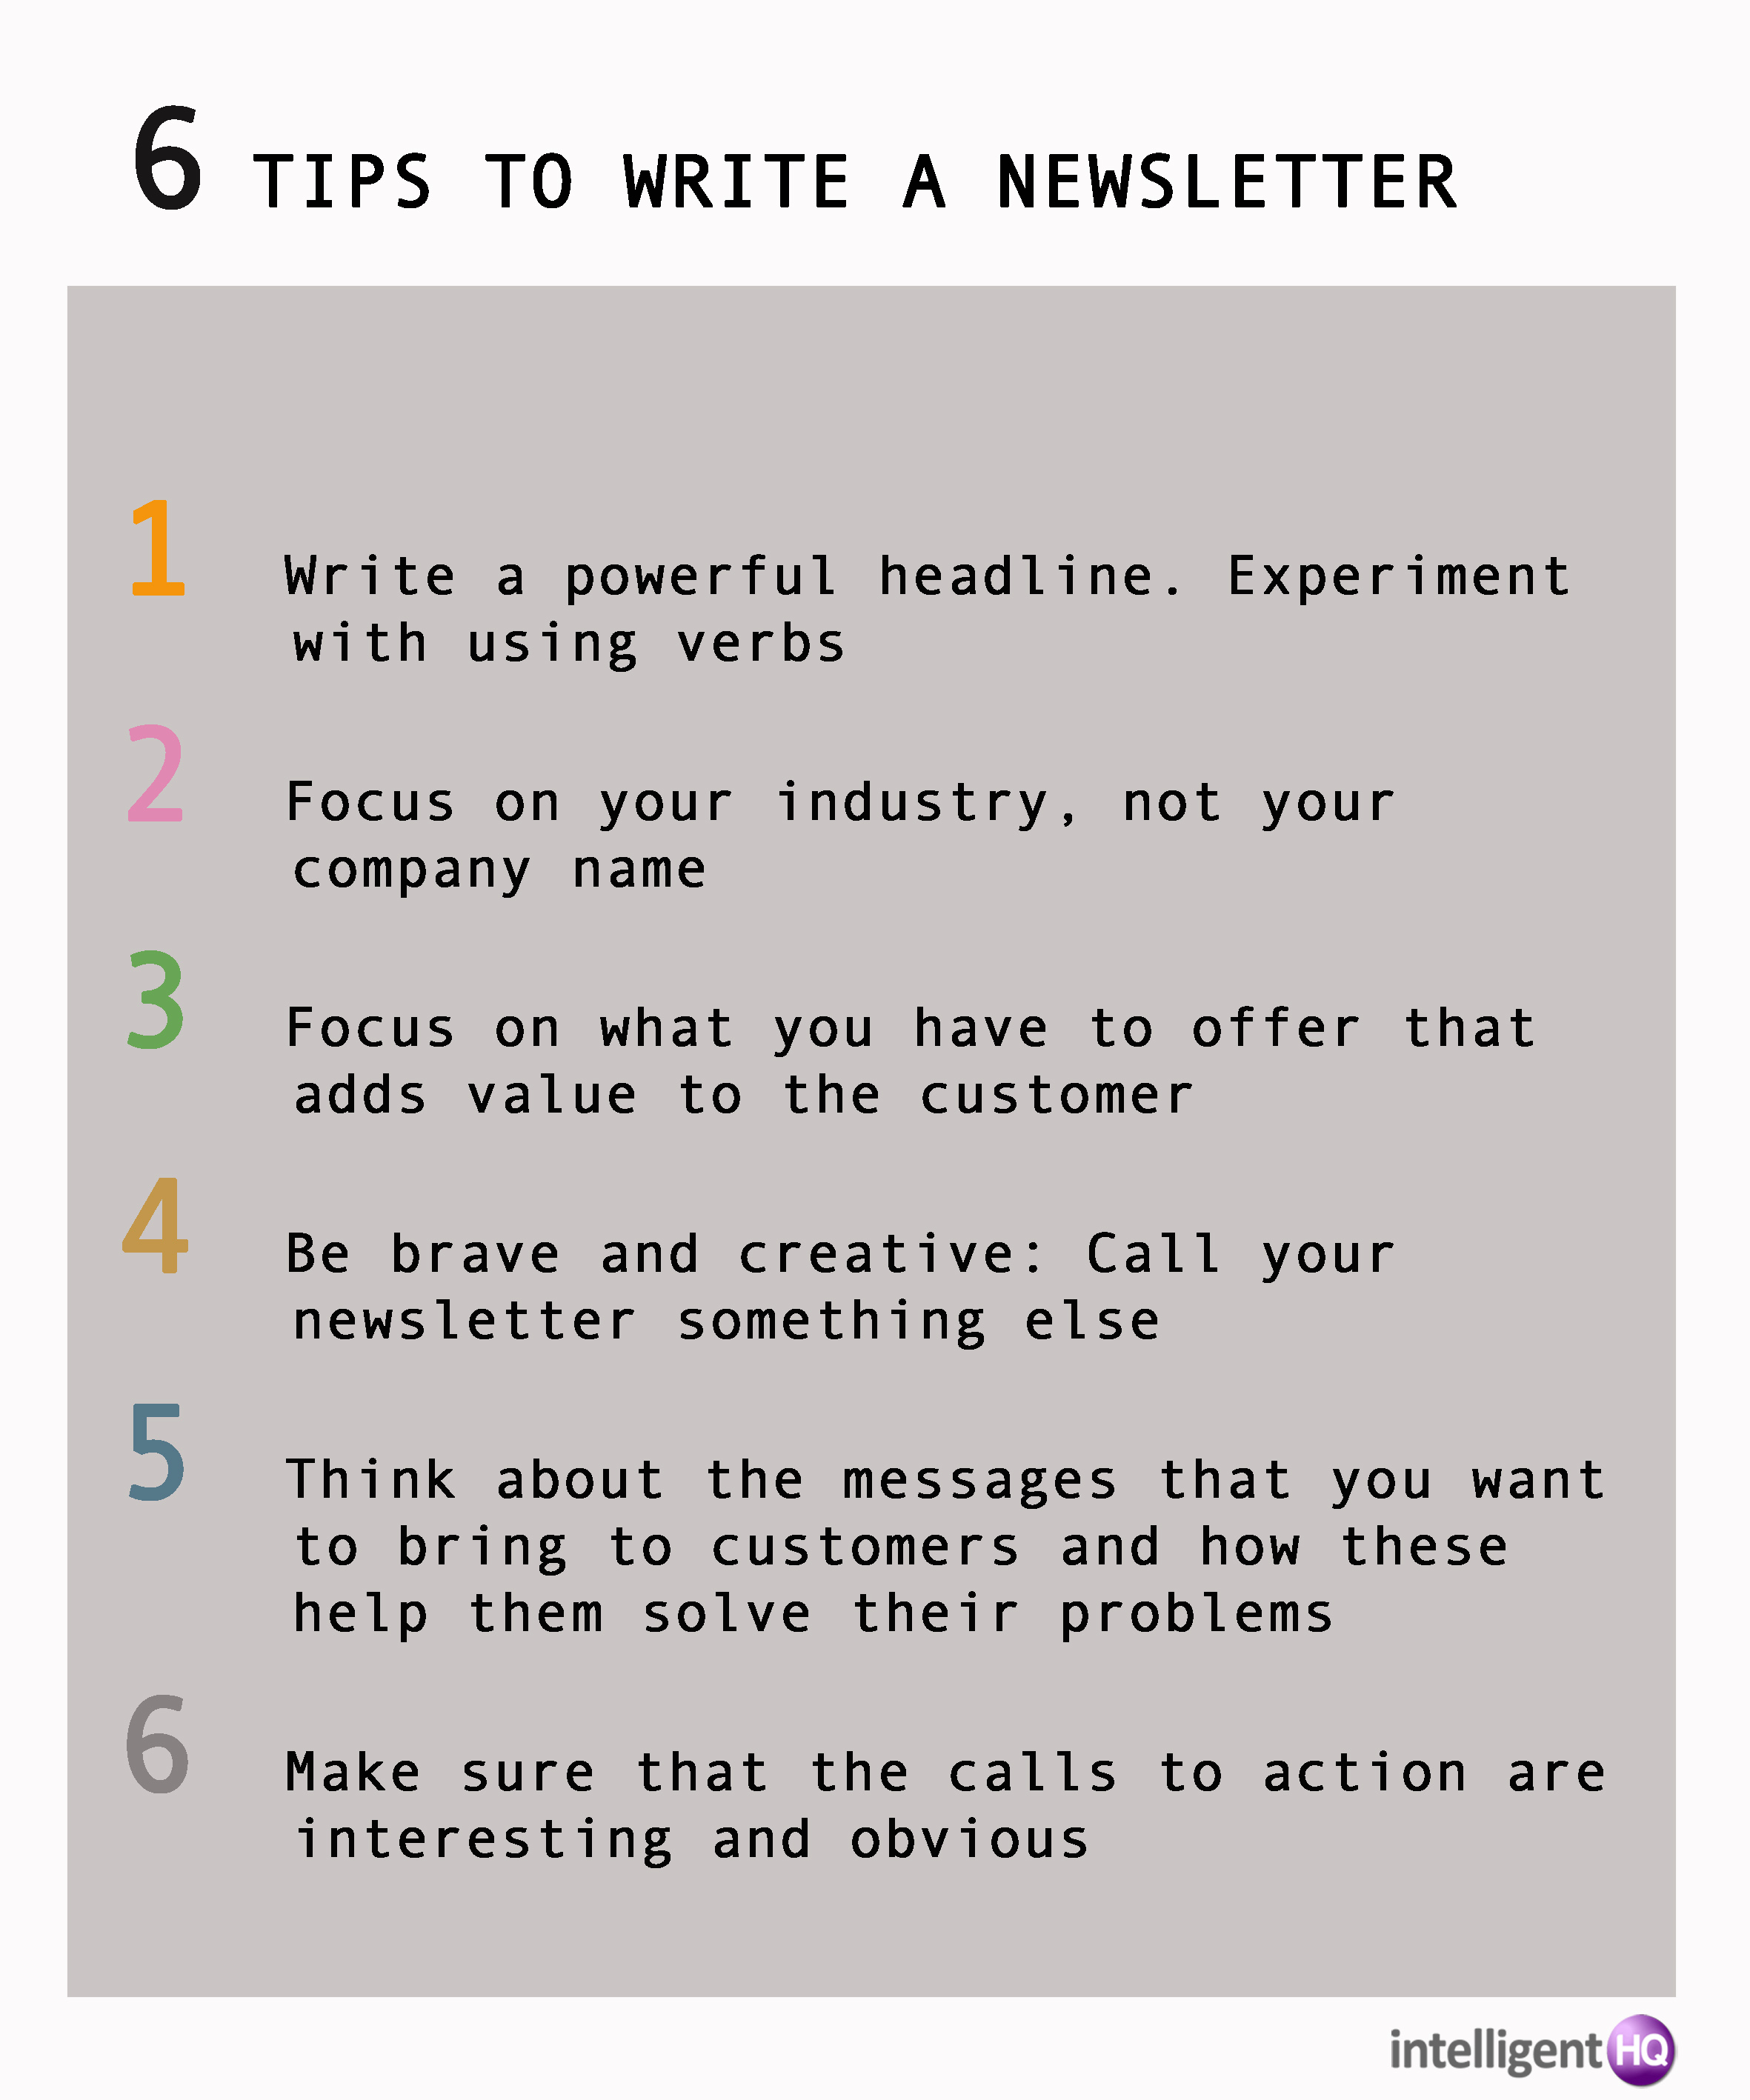 6 tips to write a newsletter